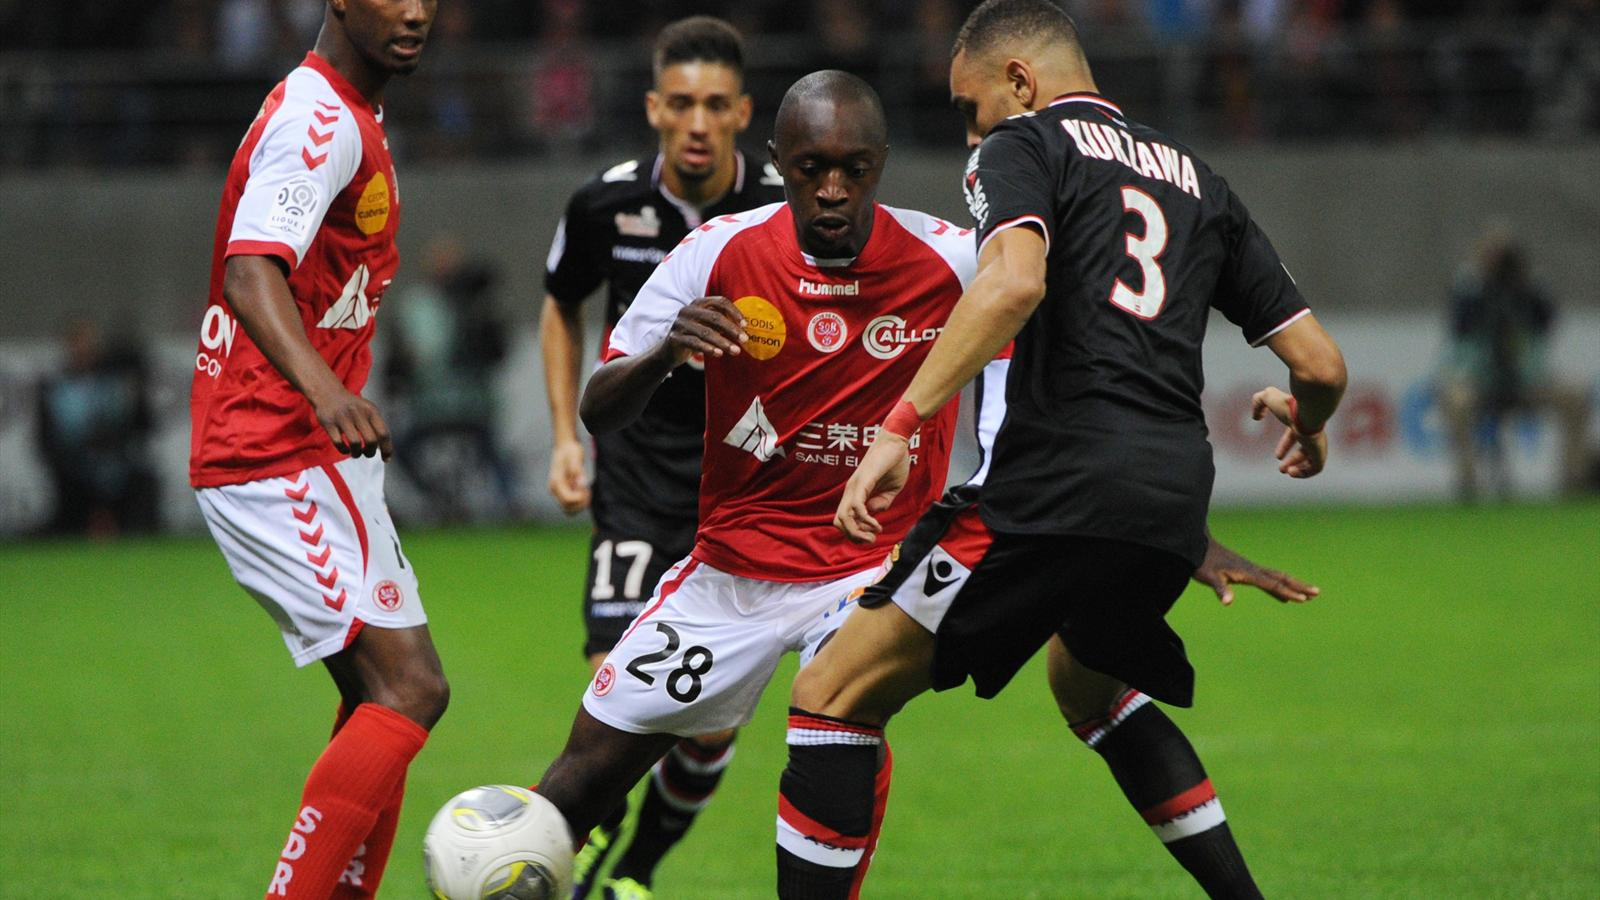 Coupe de la ligue 16es de finale reims esp re croquer monaco coupe de la ligue 2013 2014 - Coupe de la ligue 2013 14 ...